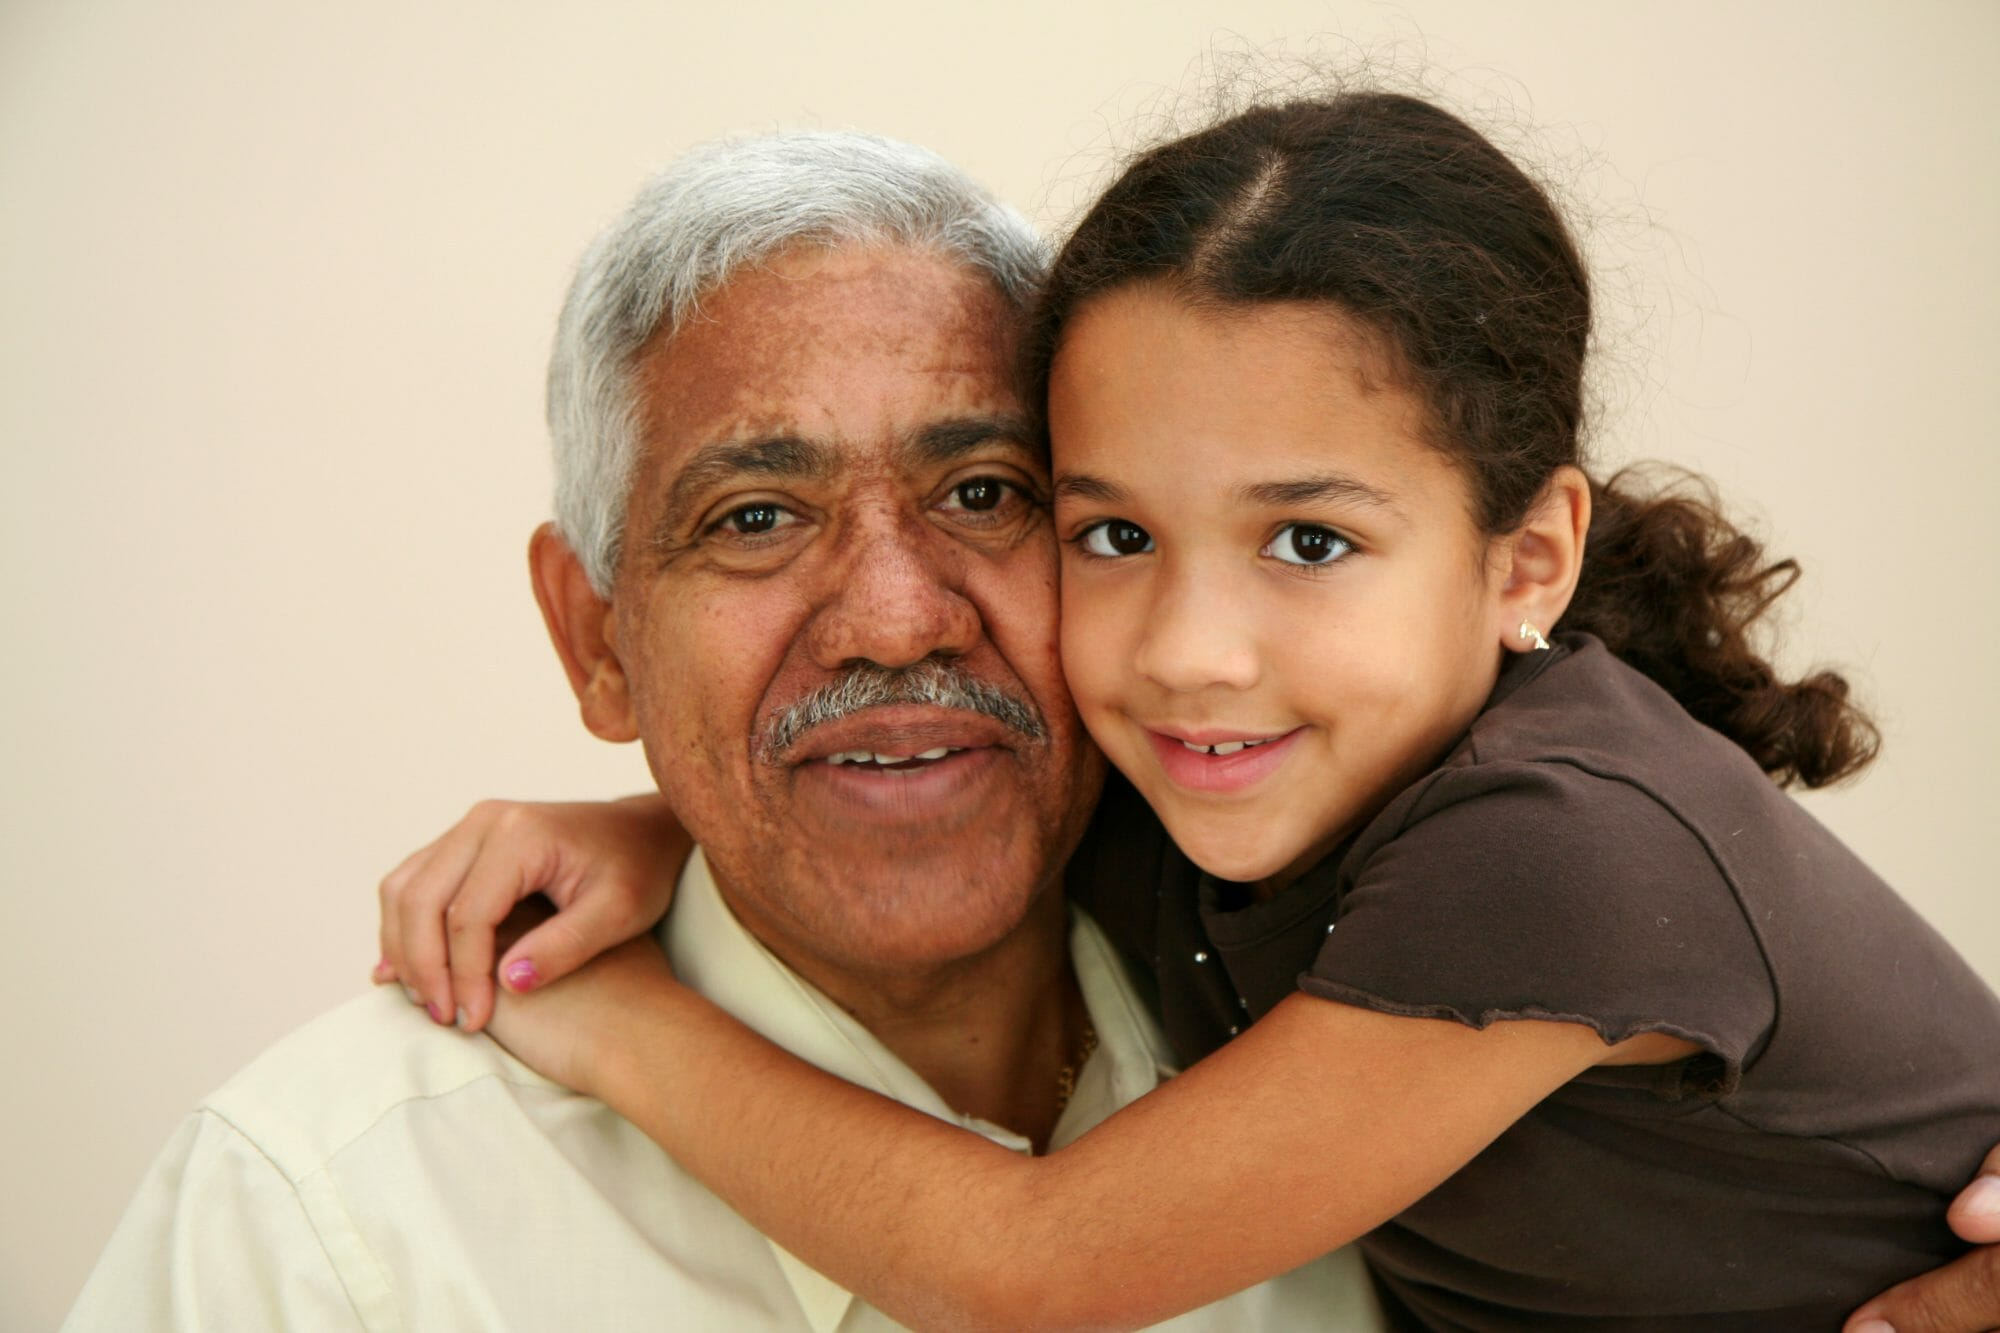 How To Be A Good Grandparent